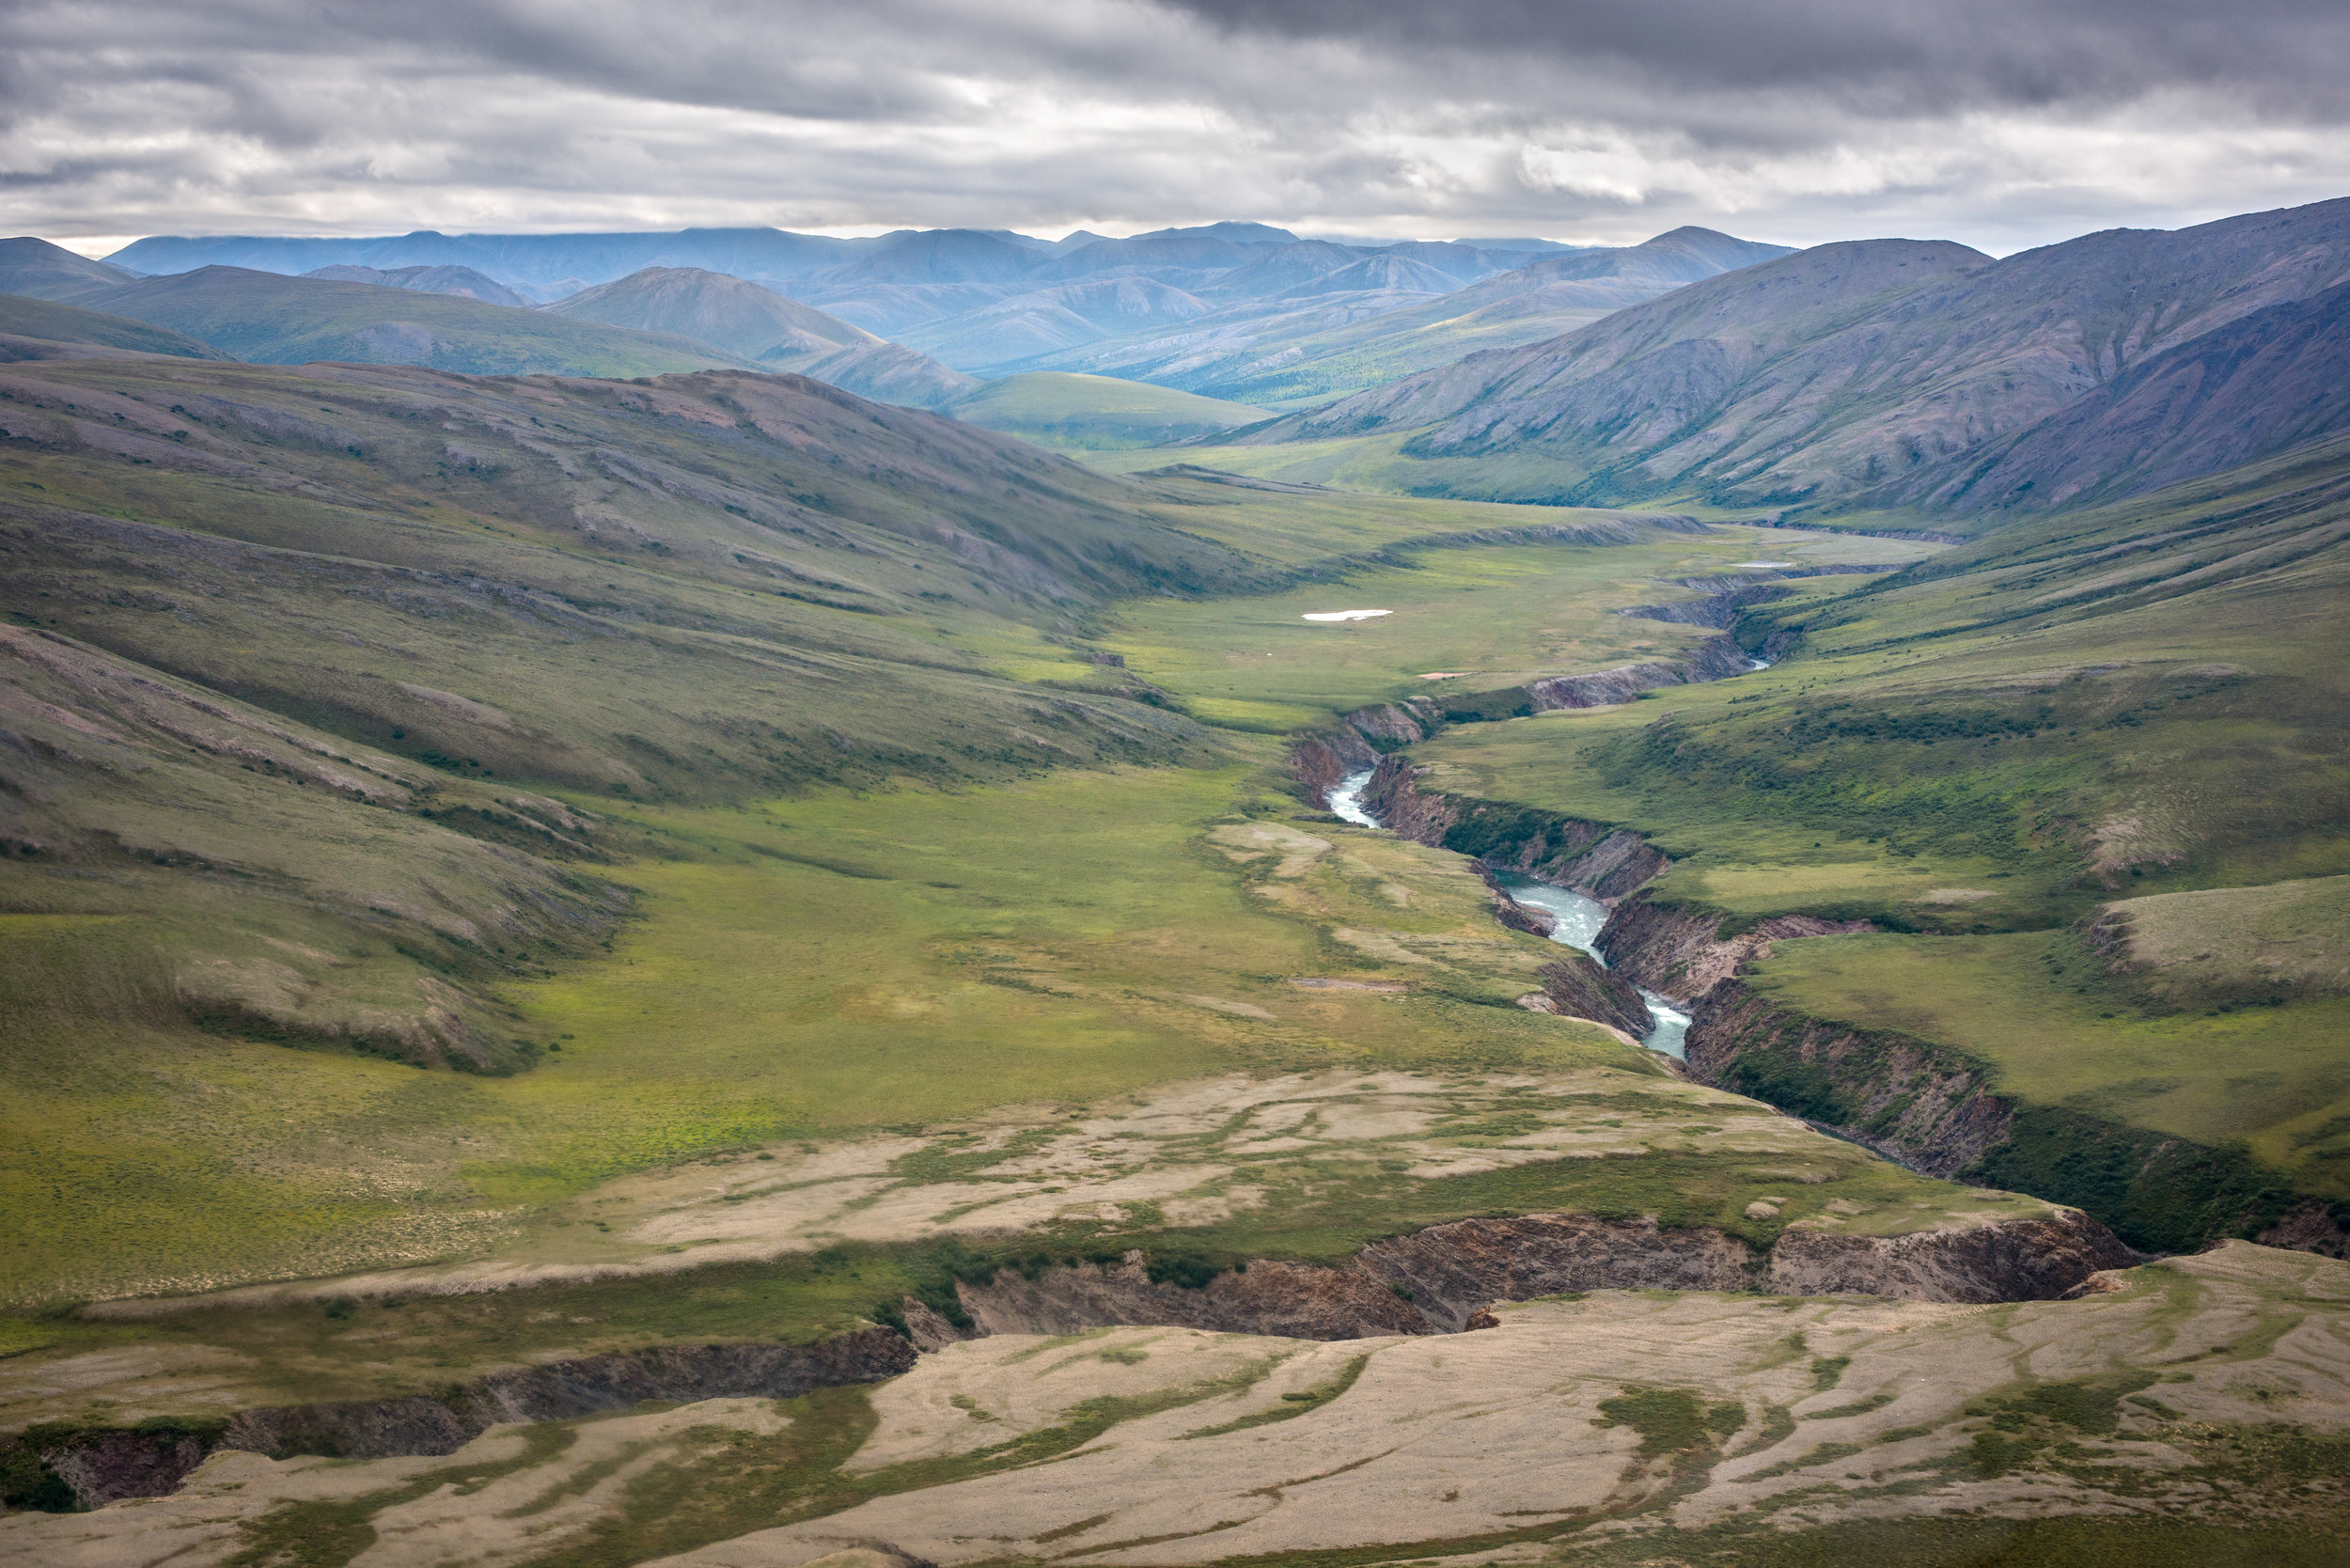 The Firth River flows across the geological grain